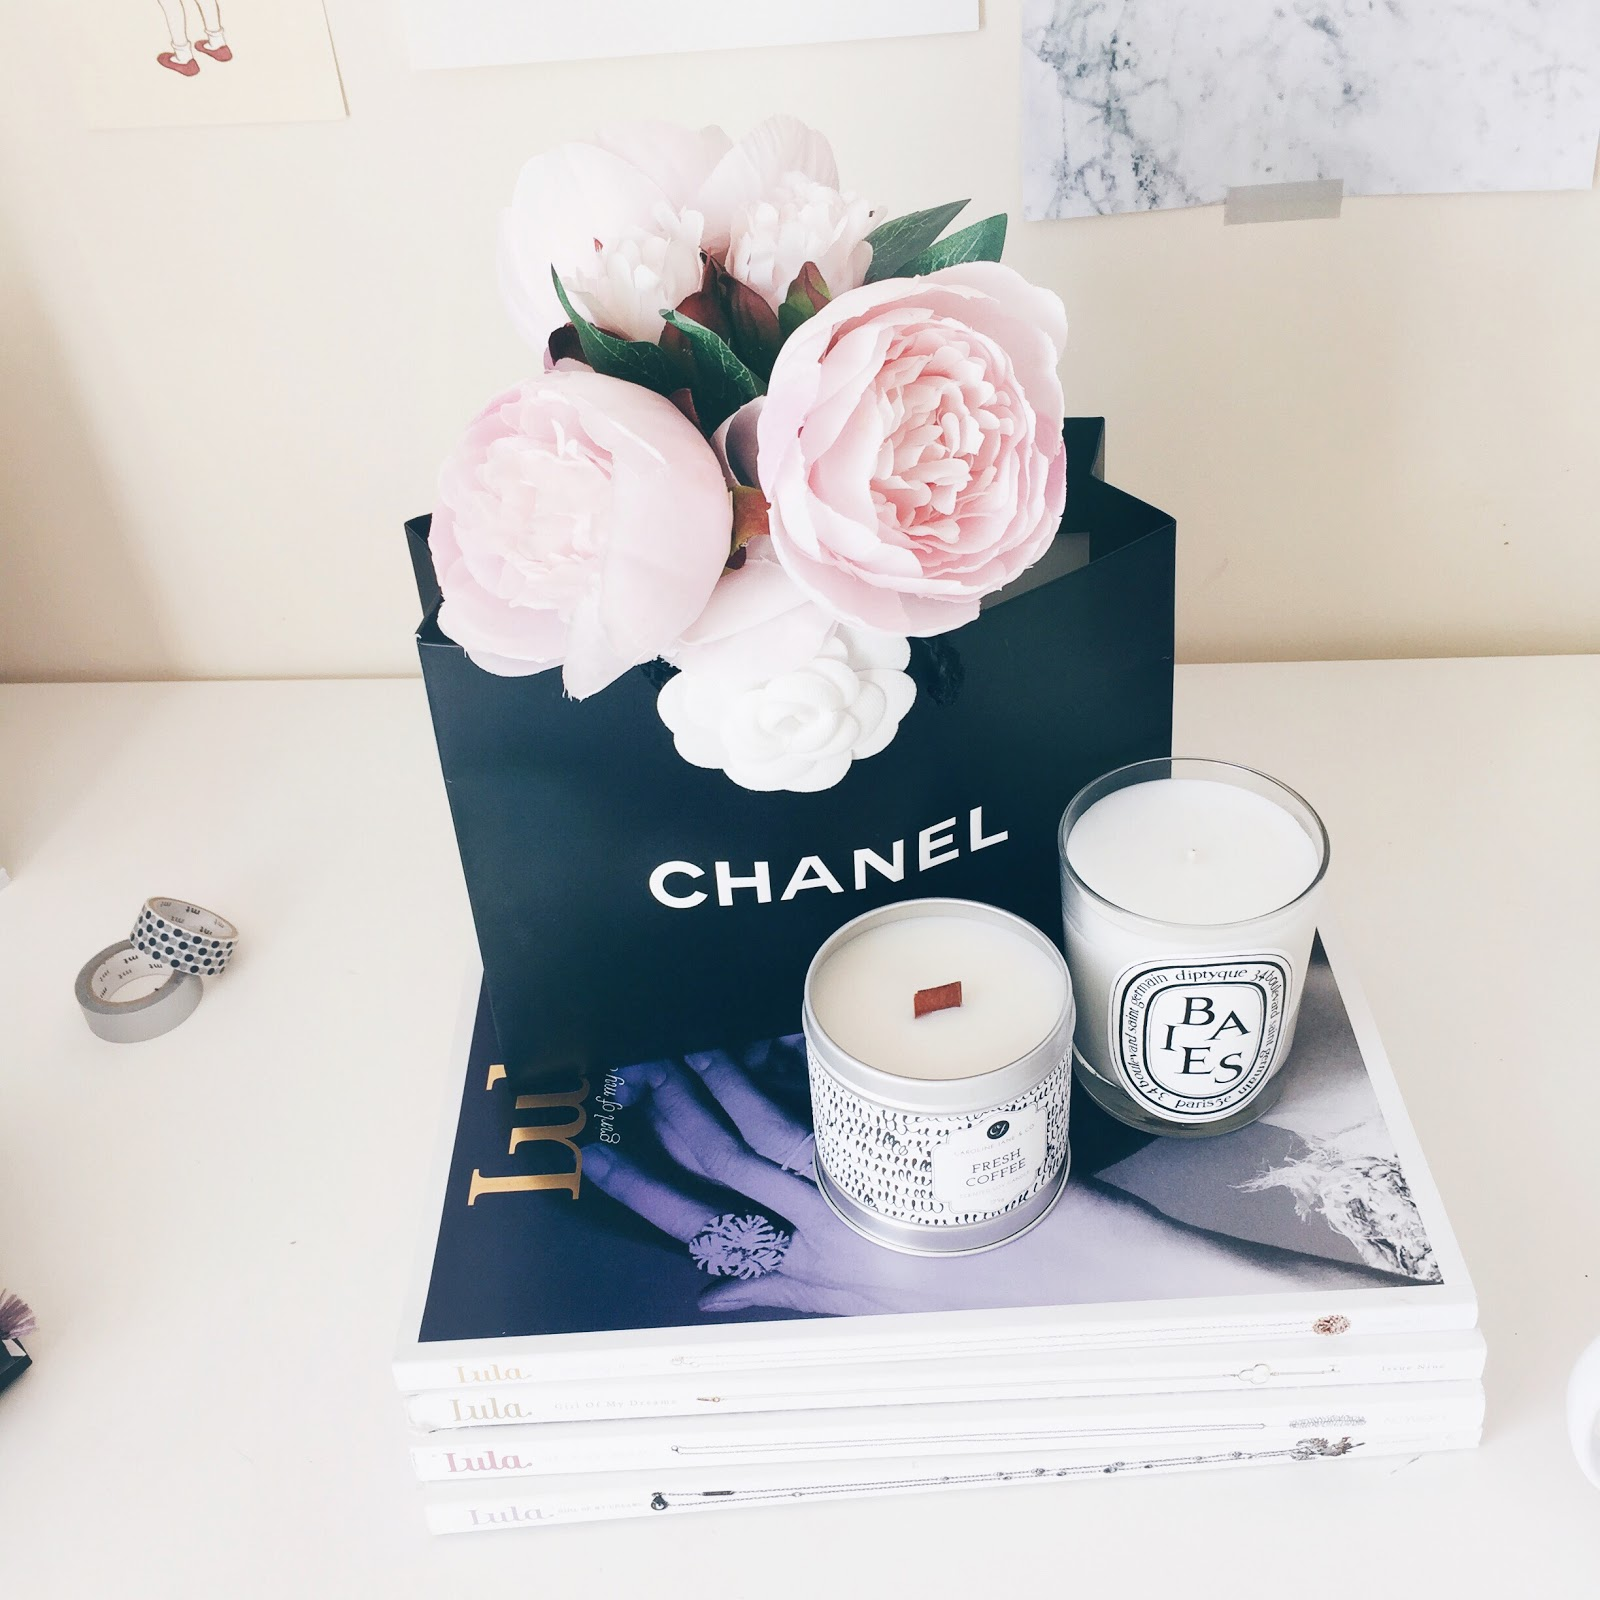 desk space inspiration, flowers in chanel bag, peonies in chanel bag